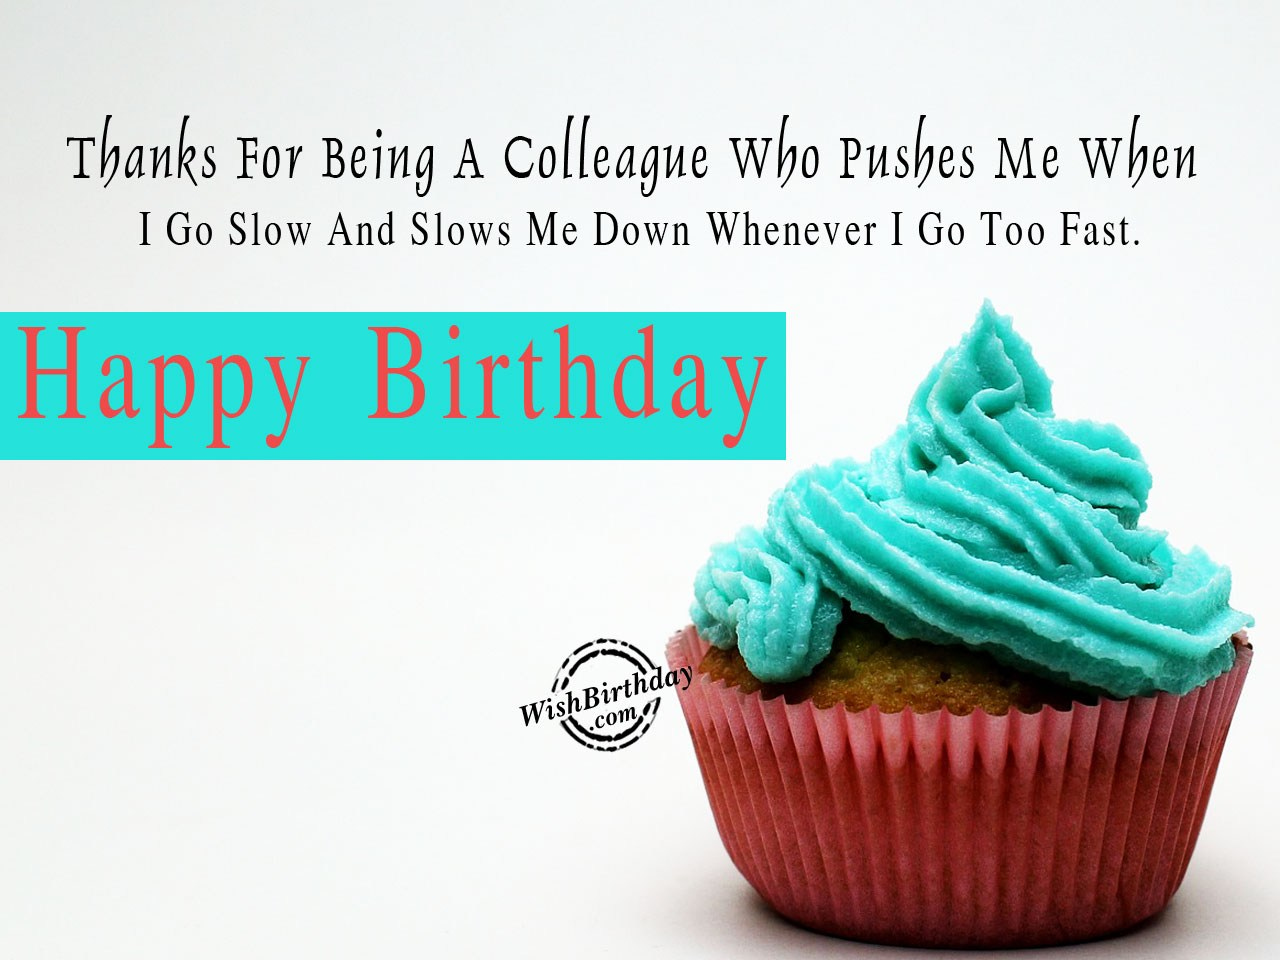 Birthday Wishes For Colleague Birthday Images Pictures – Birthday Greetings to a Colleague